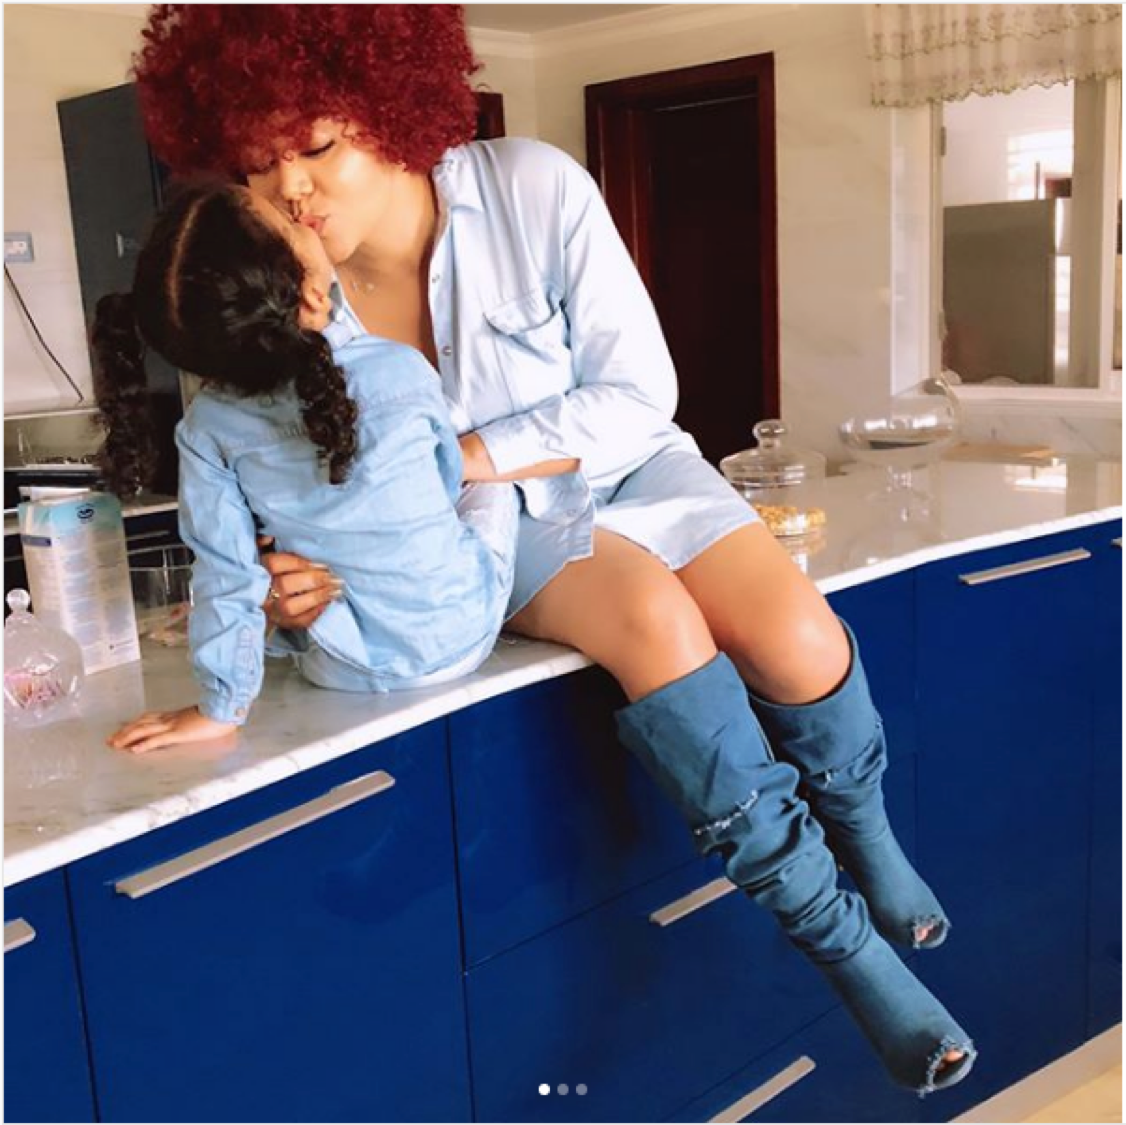 Nadia Buari Look splashily stunning in this photo.